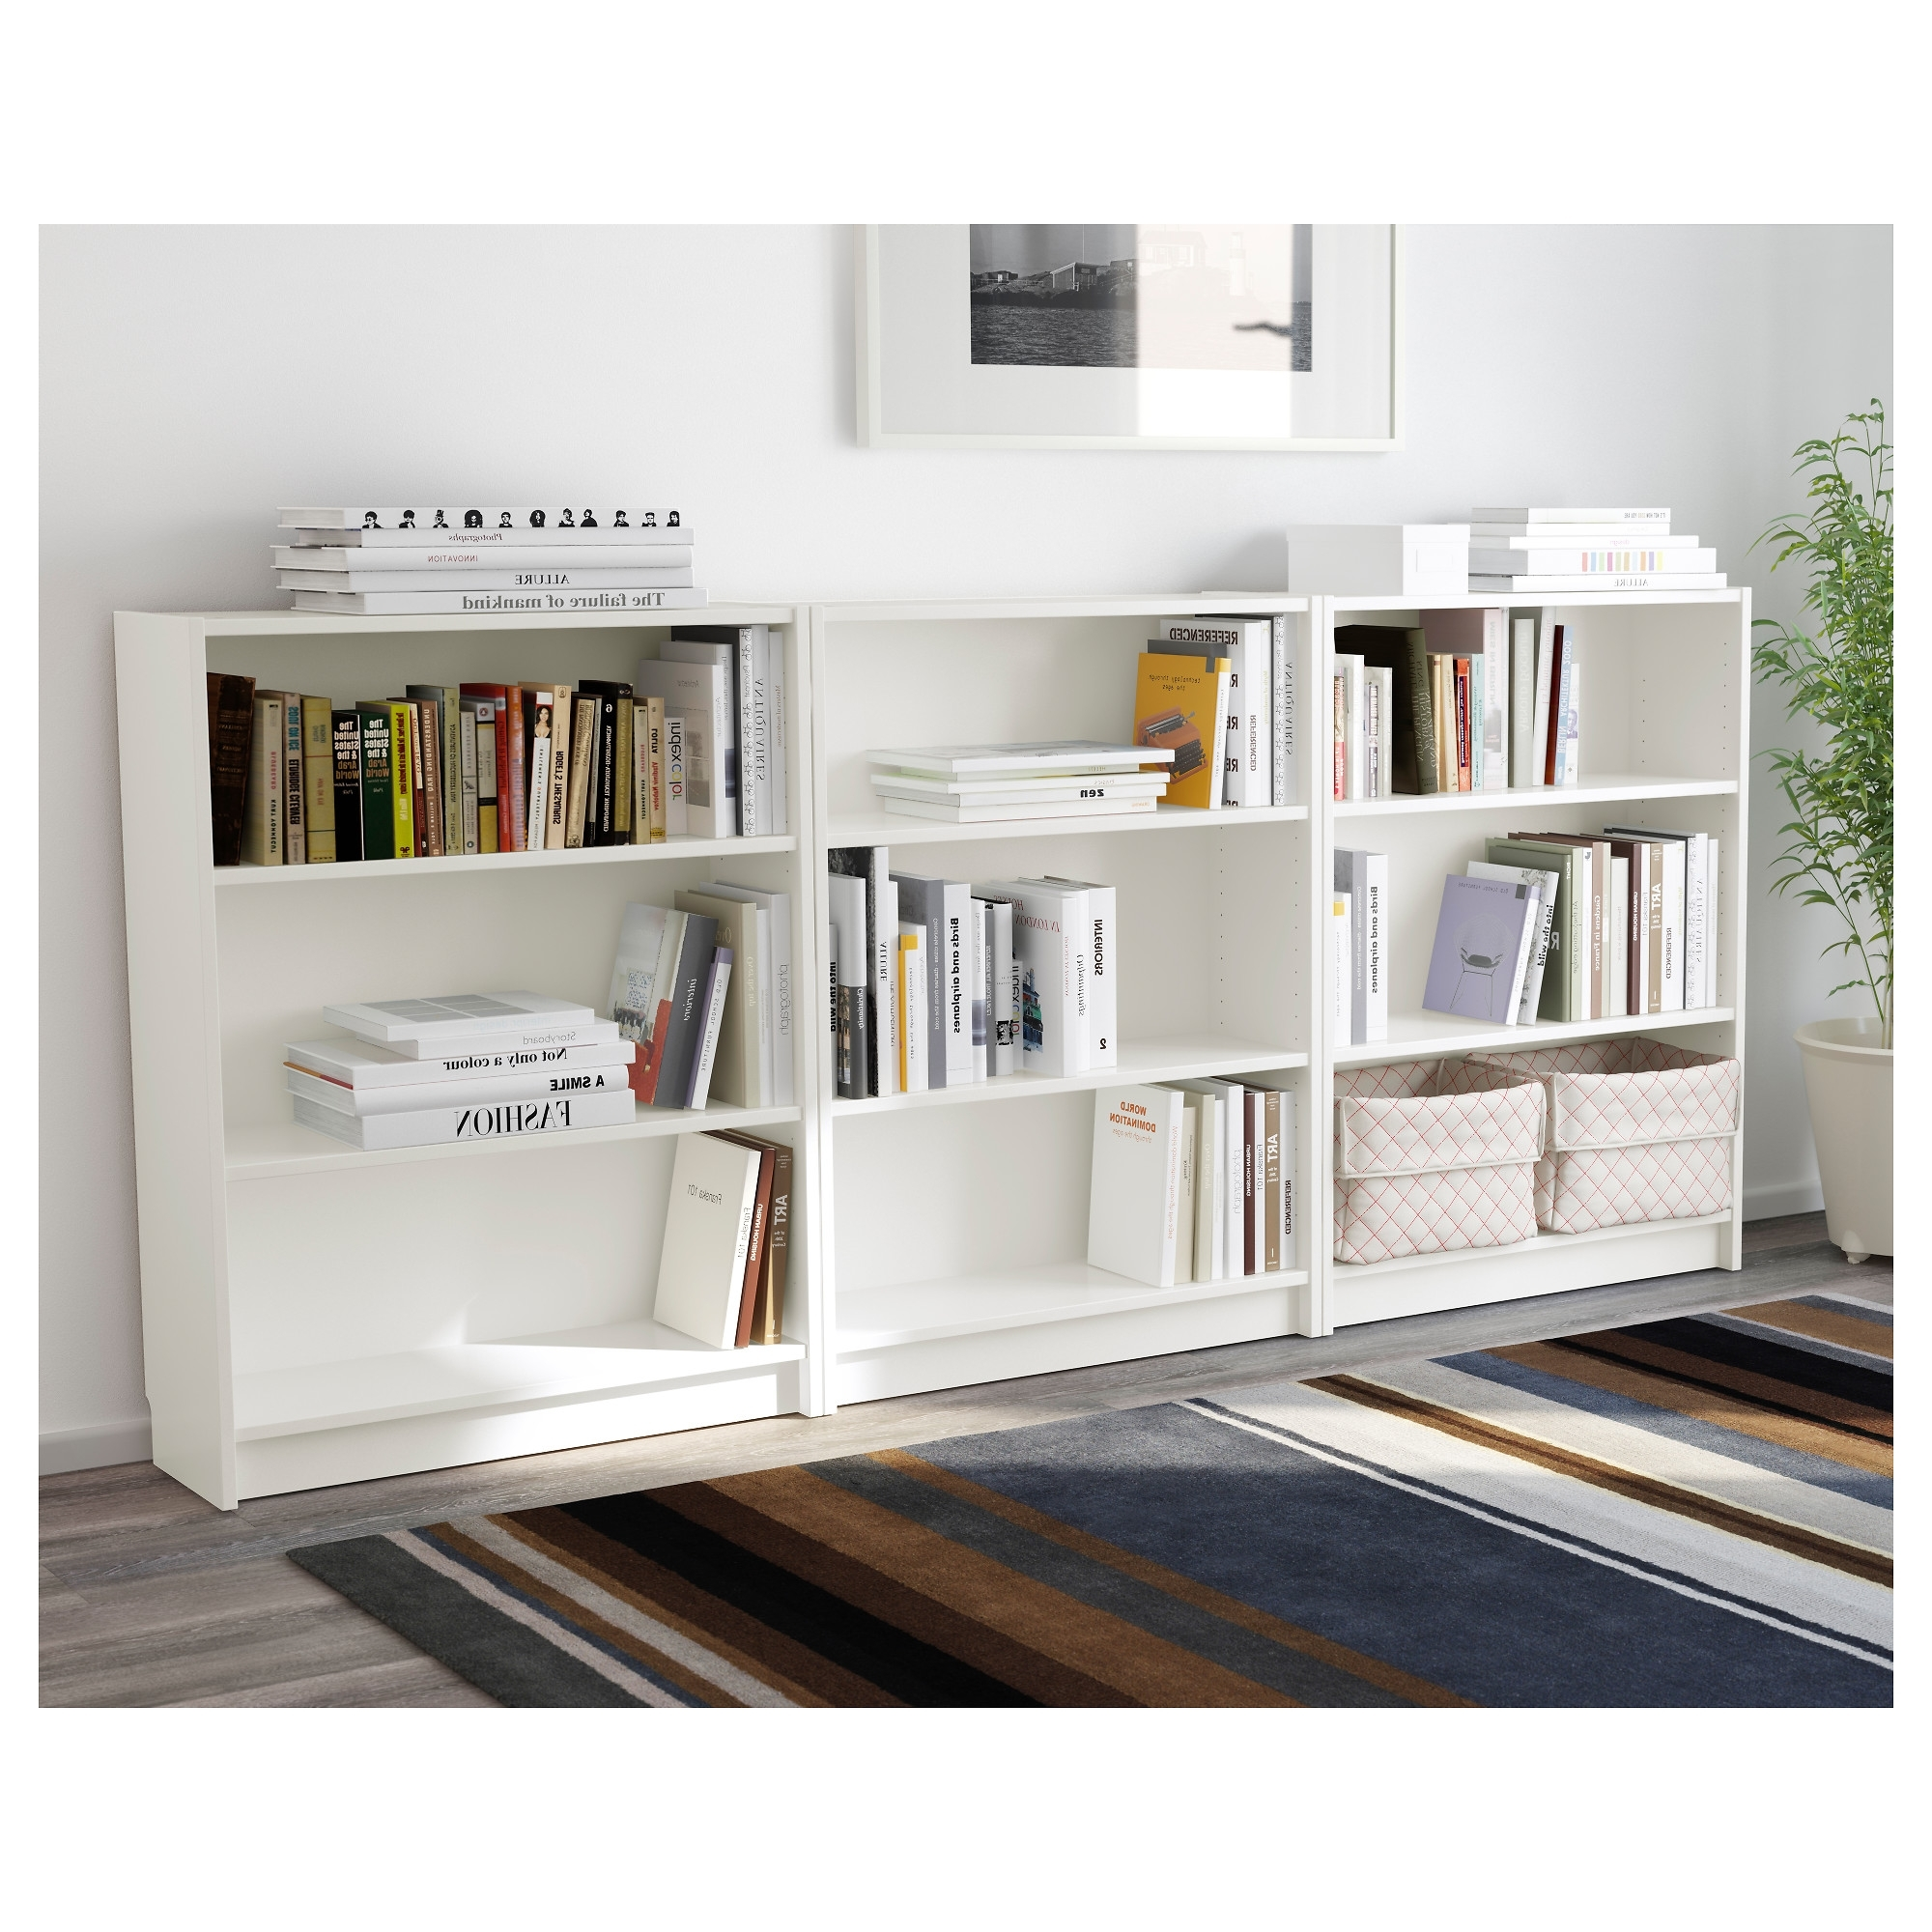 Ikea Billy Bookcases Throughout Most Popular Billy Bookcase – Black Brown – Ikea (View 11 of 15)